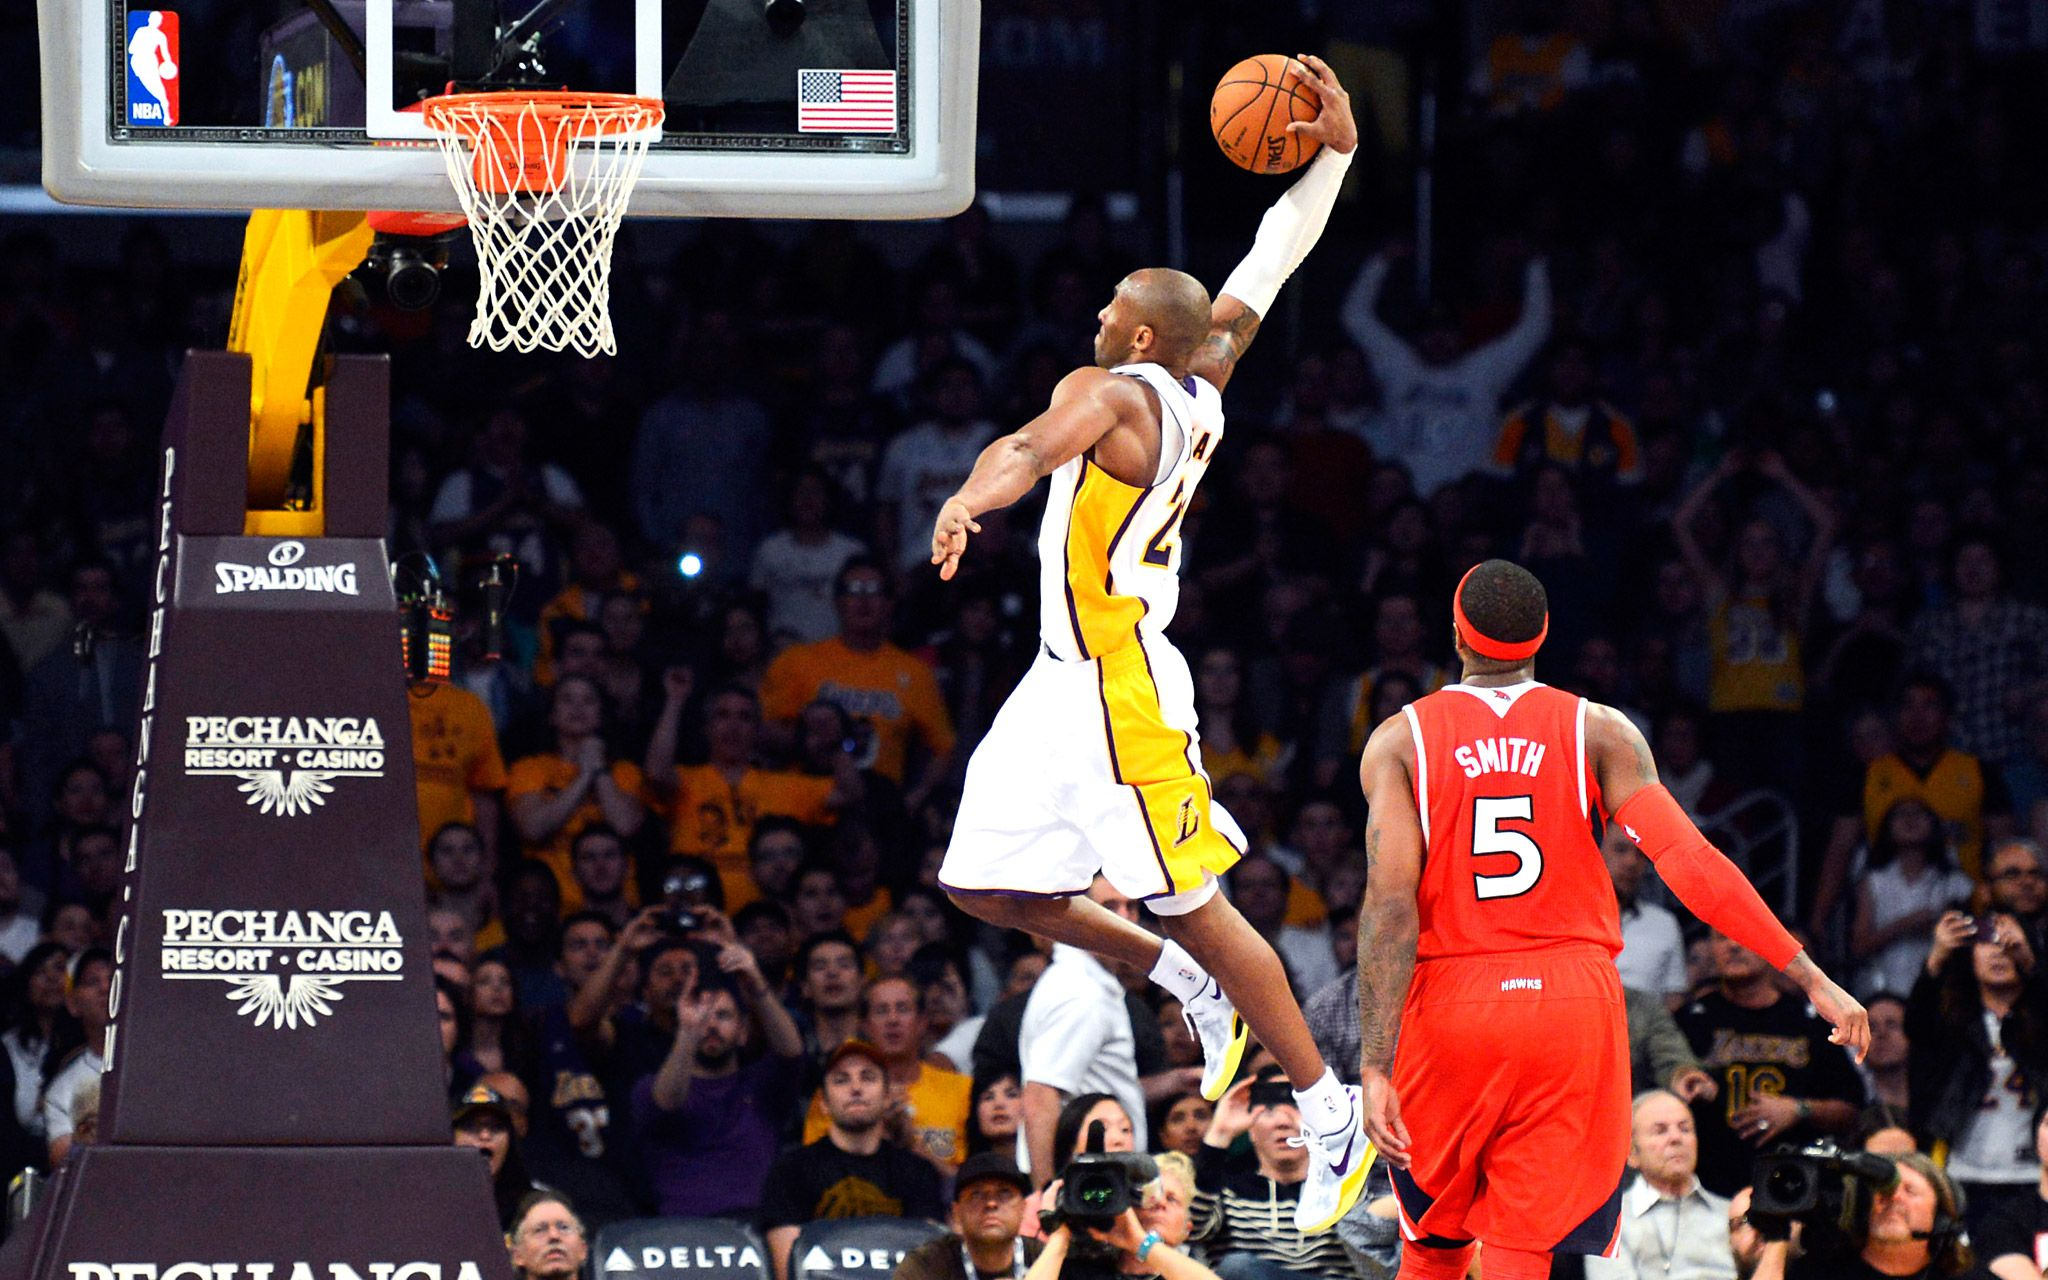 Kobe bryant dunk 2013 hd images 3 hd wallpapers kobe pinterest kobe bryant dunk 2013 hd images 3 hd wallpapers voltagebd Image collections